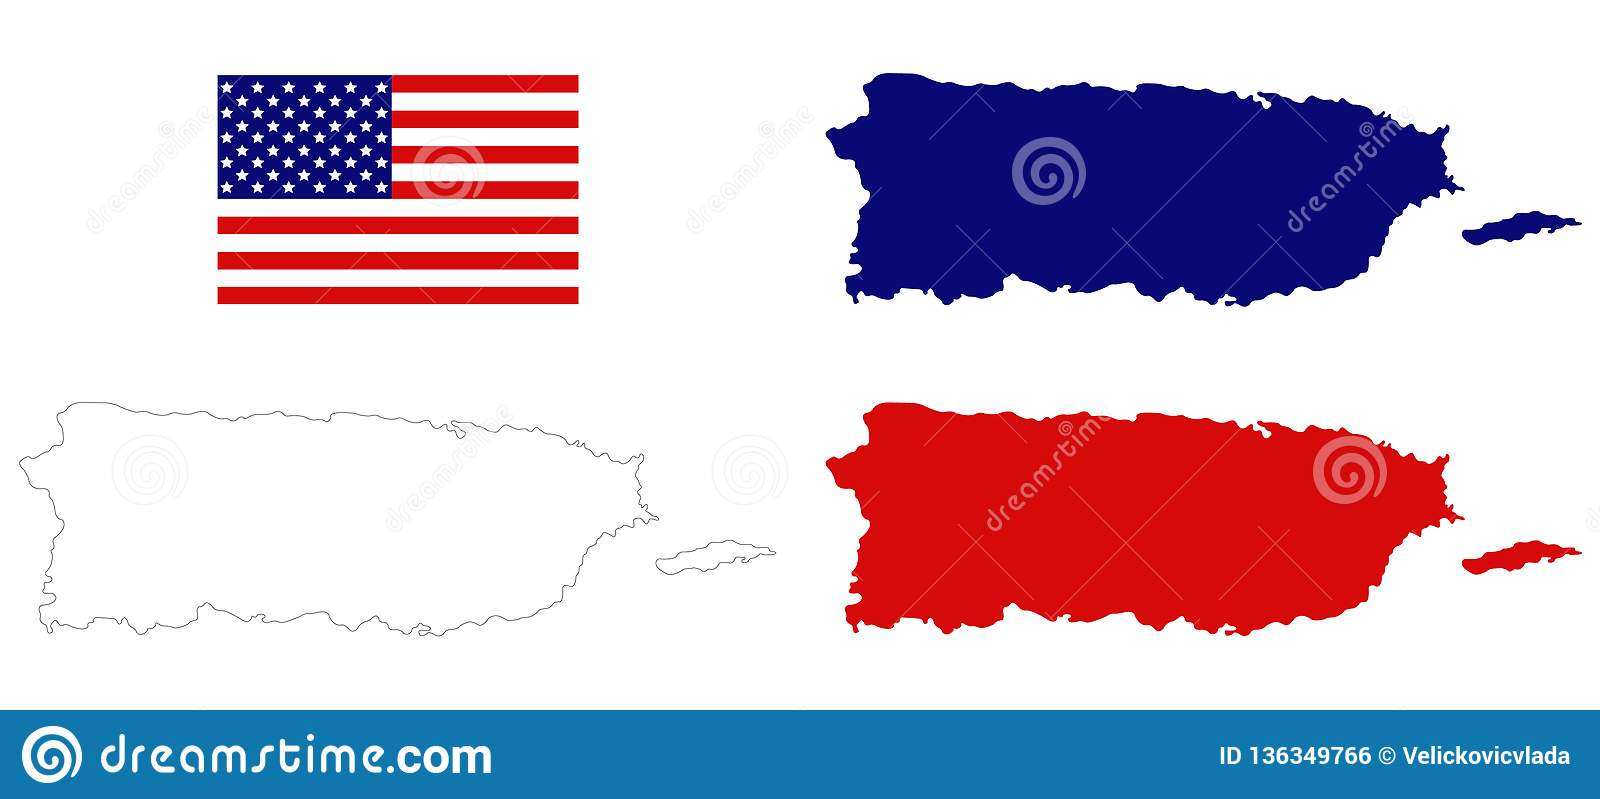 Puerto Rico Maps With USA Flag - Commonwealth Of Puerto Rico ...